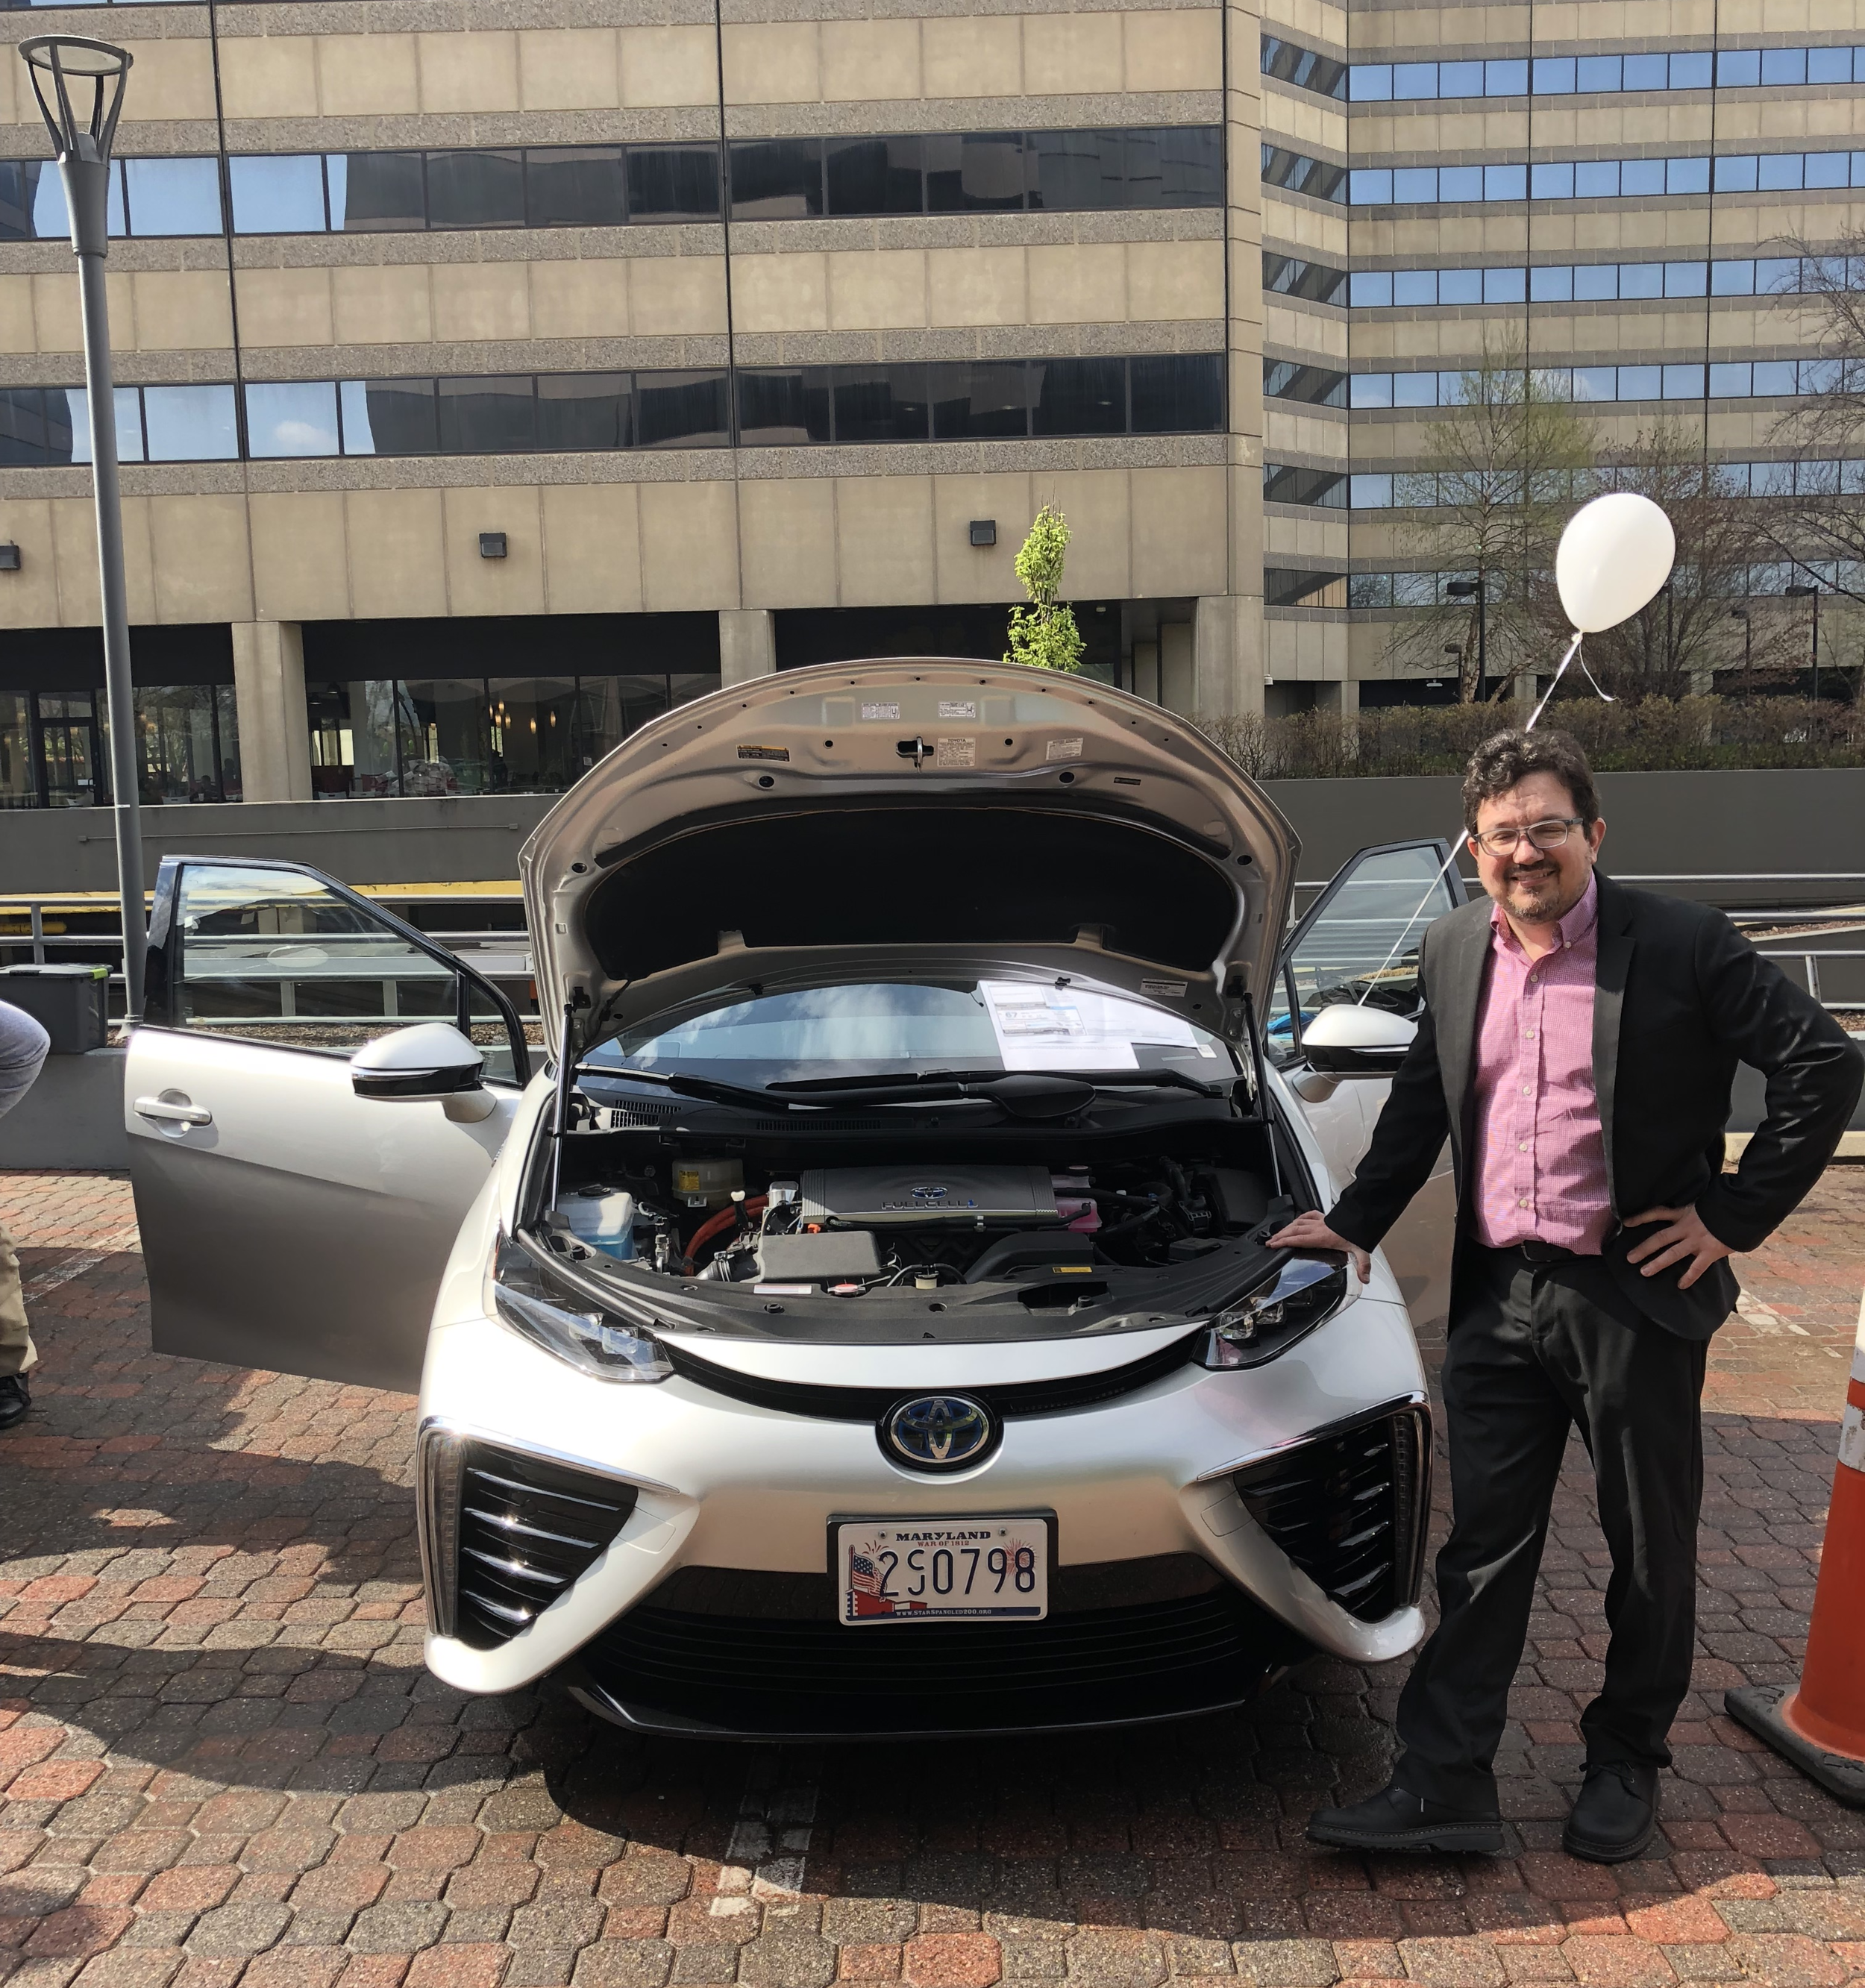 Chris Santucci, Energy Research Manager at Toyota Motor North America, with the 2016 Toyota Mirai fuel cell vehicle at the DEA EV Showcase. Source: FCHEA